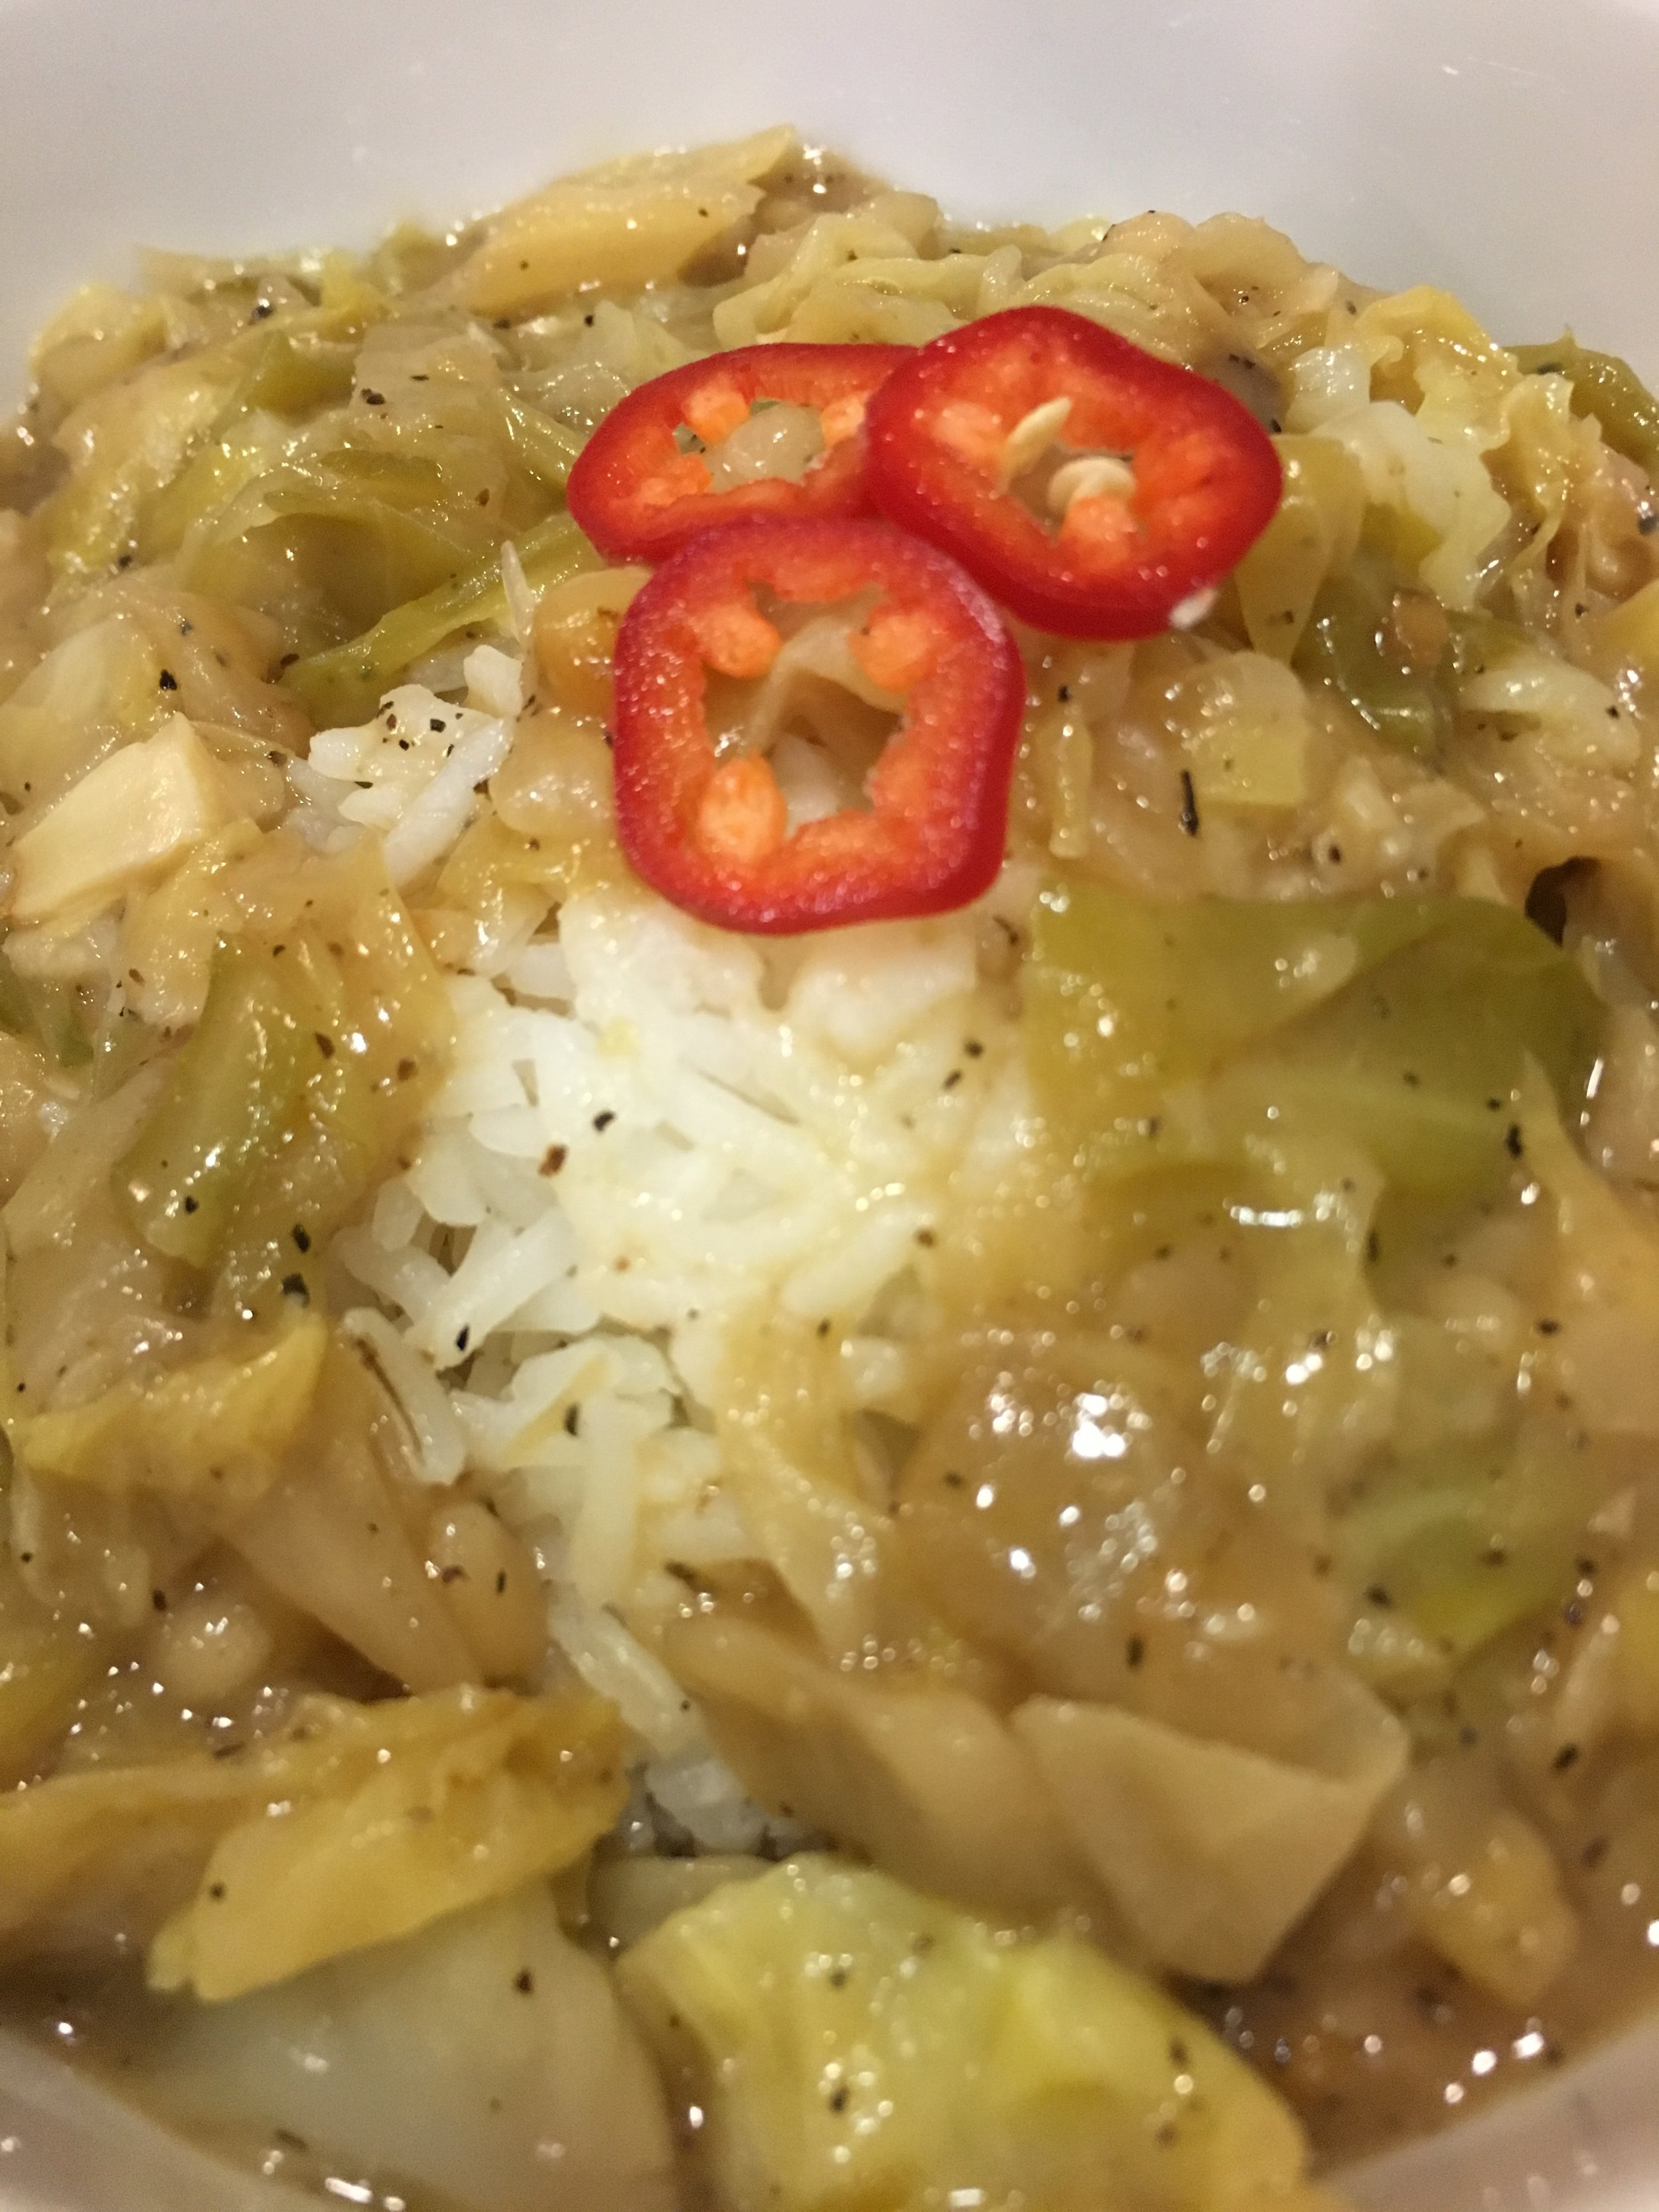 Mawmaw's Smothered Cabbage - This tasty treat pays homage to our Grandma Ware, with its sweet and spicy flavor profiles. Based in a garlic-onion-shallot roux gravy, our cabbage is smothered to al-dente perfection, with its crunchy softness, and its sweet and spicy seasonings.